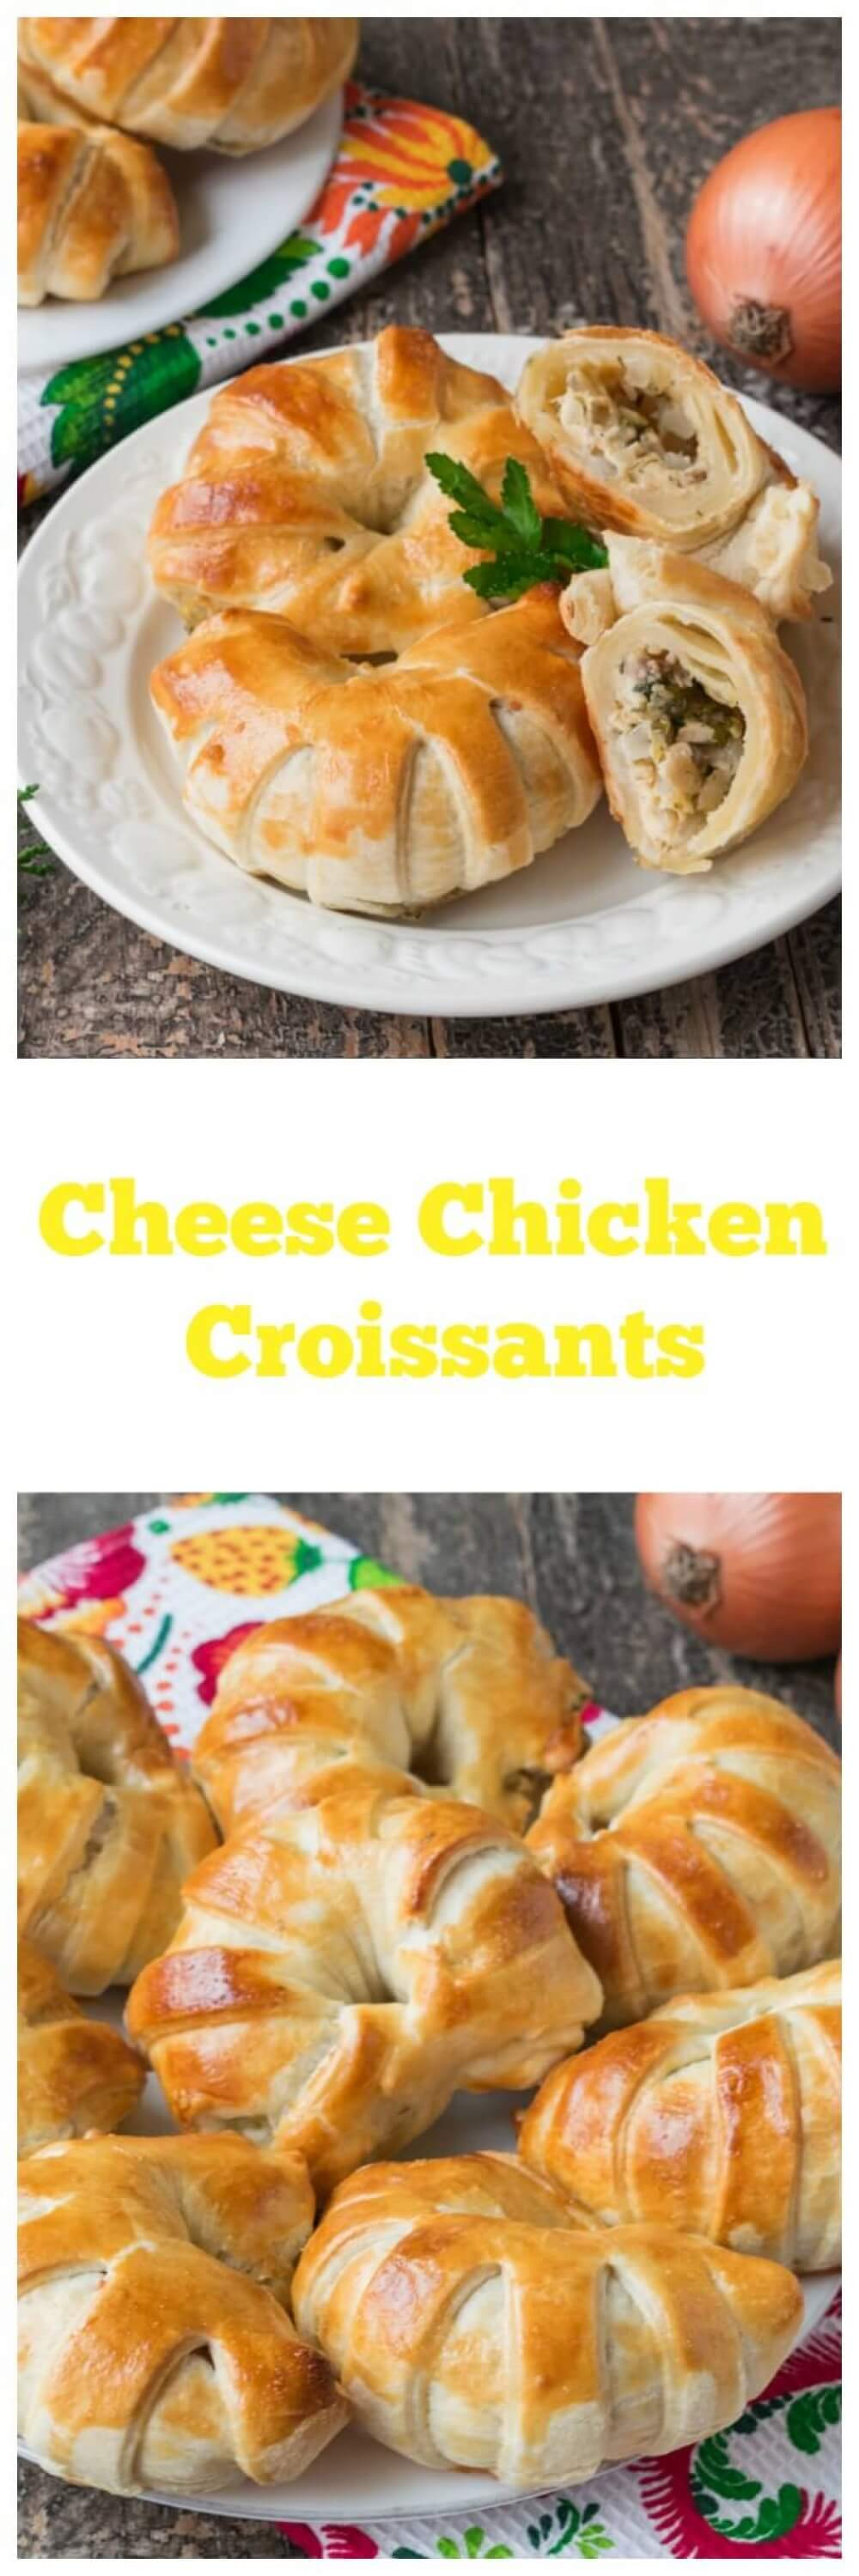 Cheese Chicken Croissants